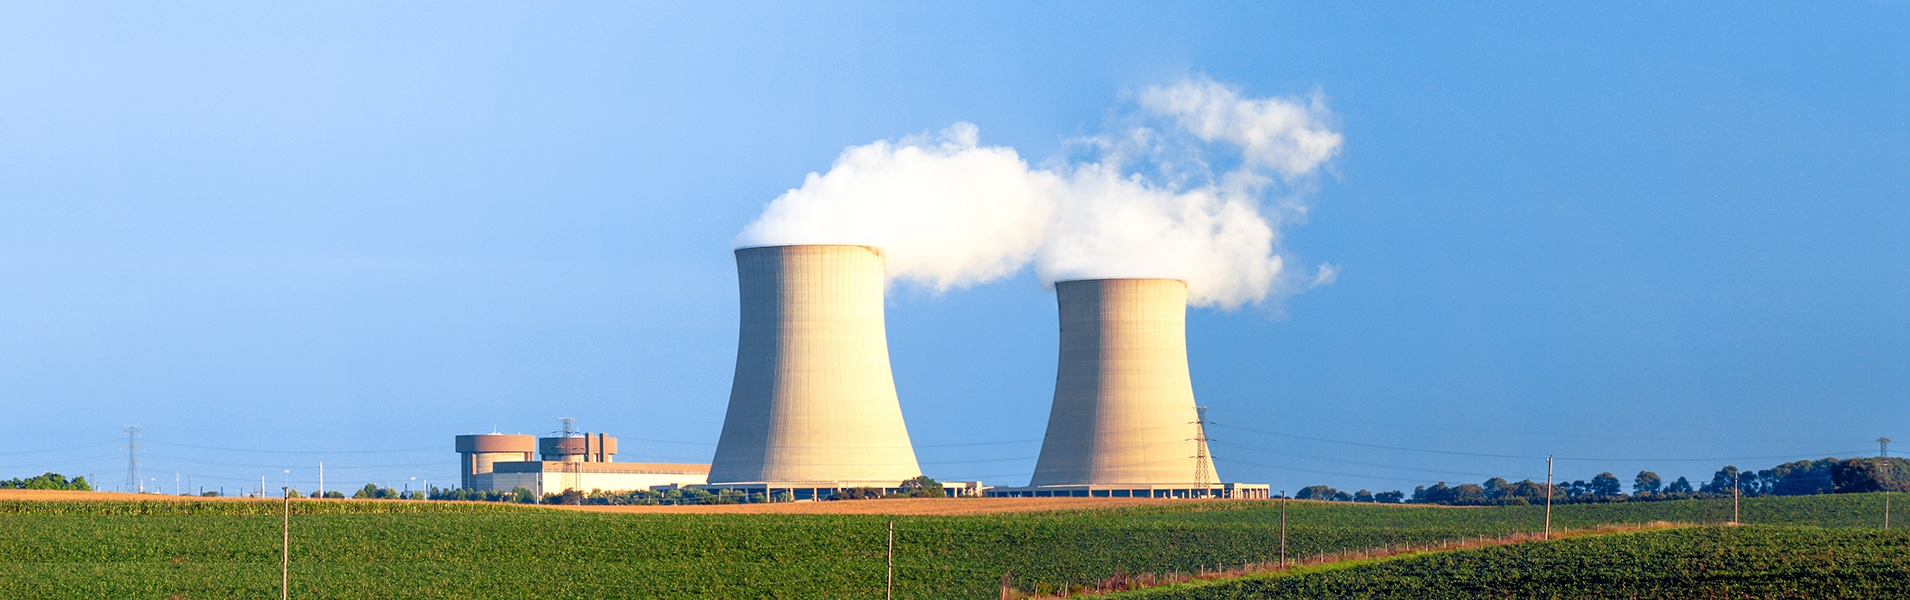 Nuclear Plant Robotic Security